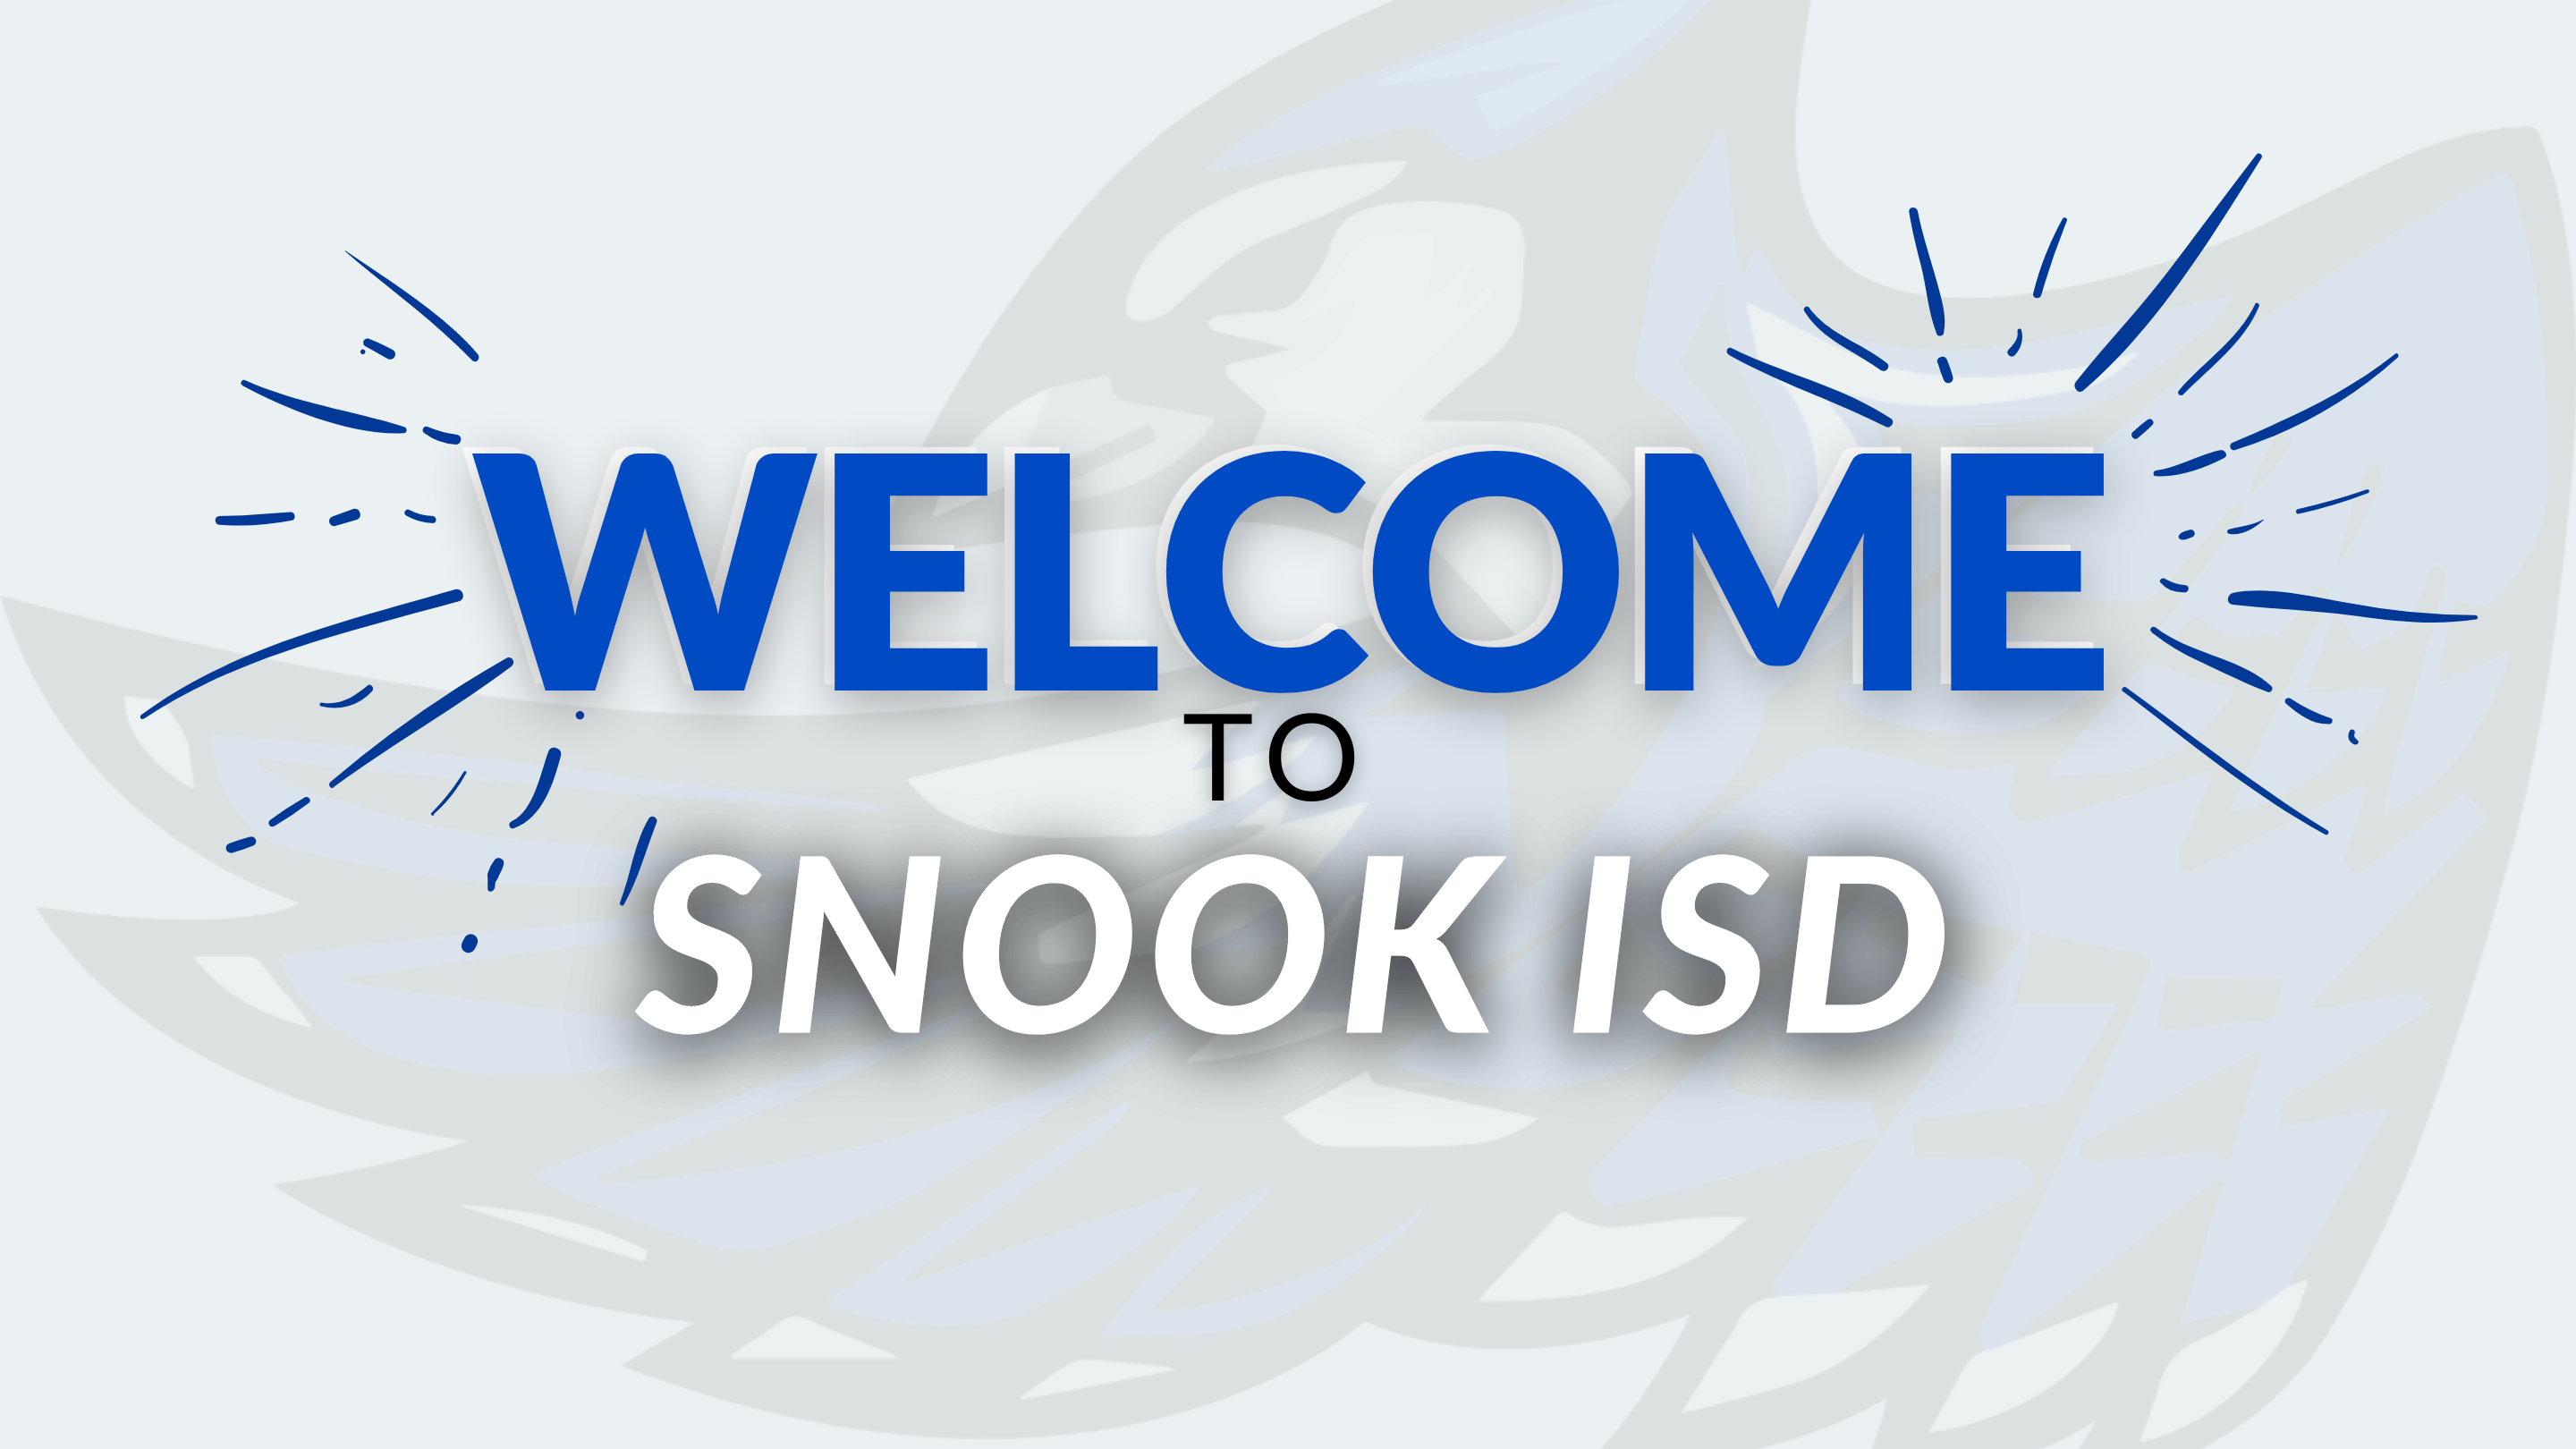 welcome to snook isd